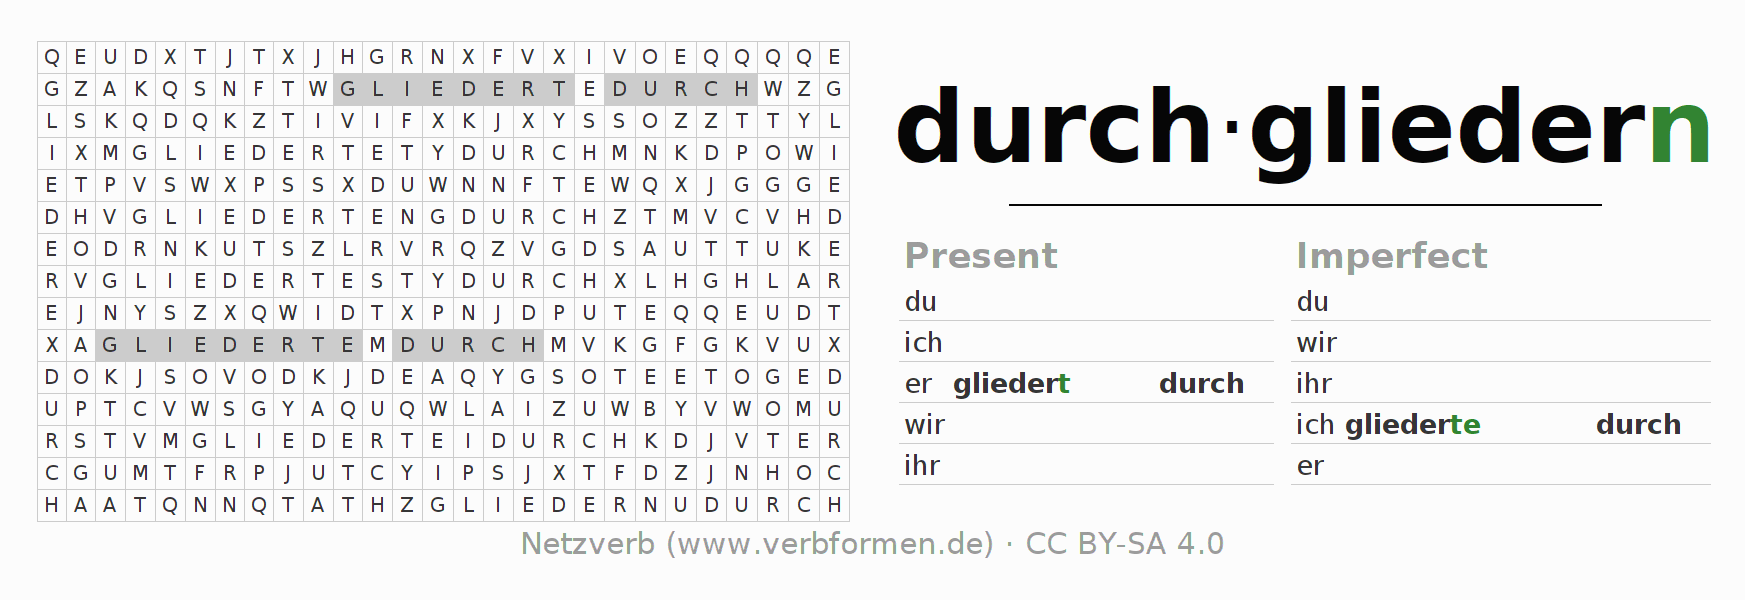 Word search puzzle for the conjugation of the verb durch-gliedern